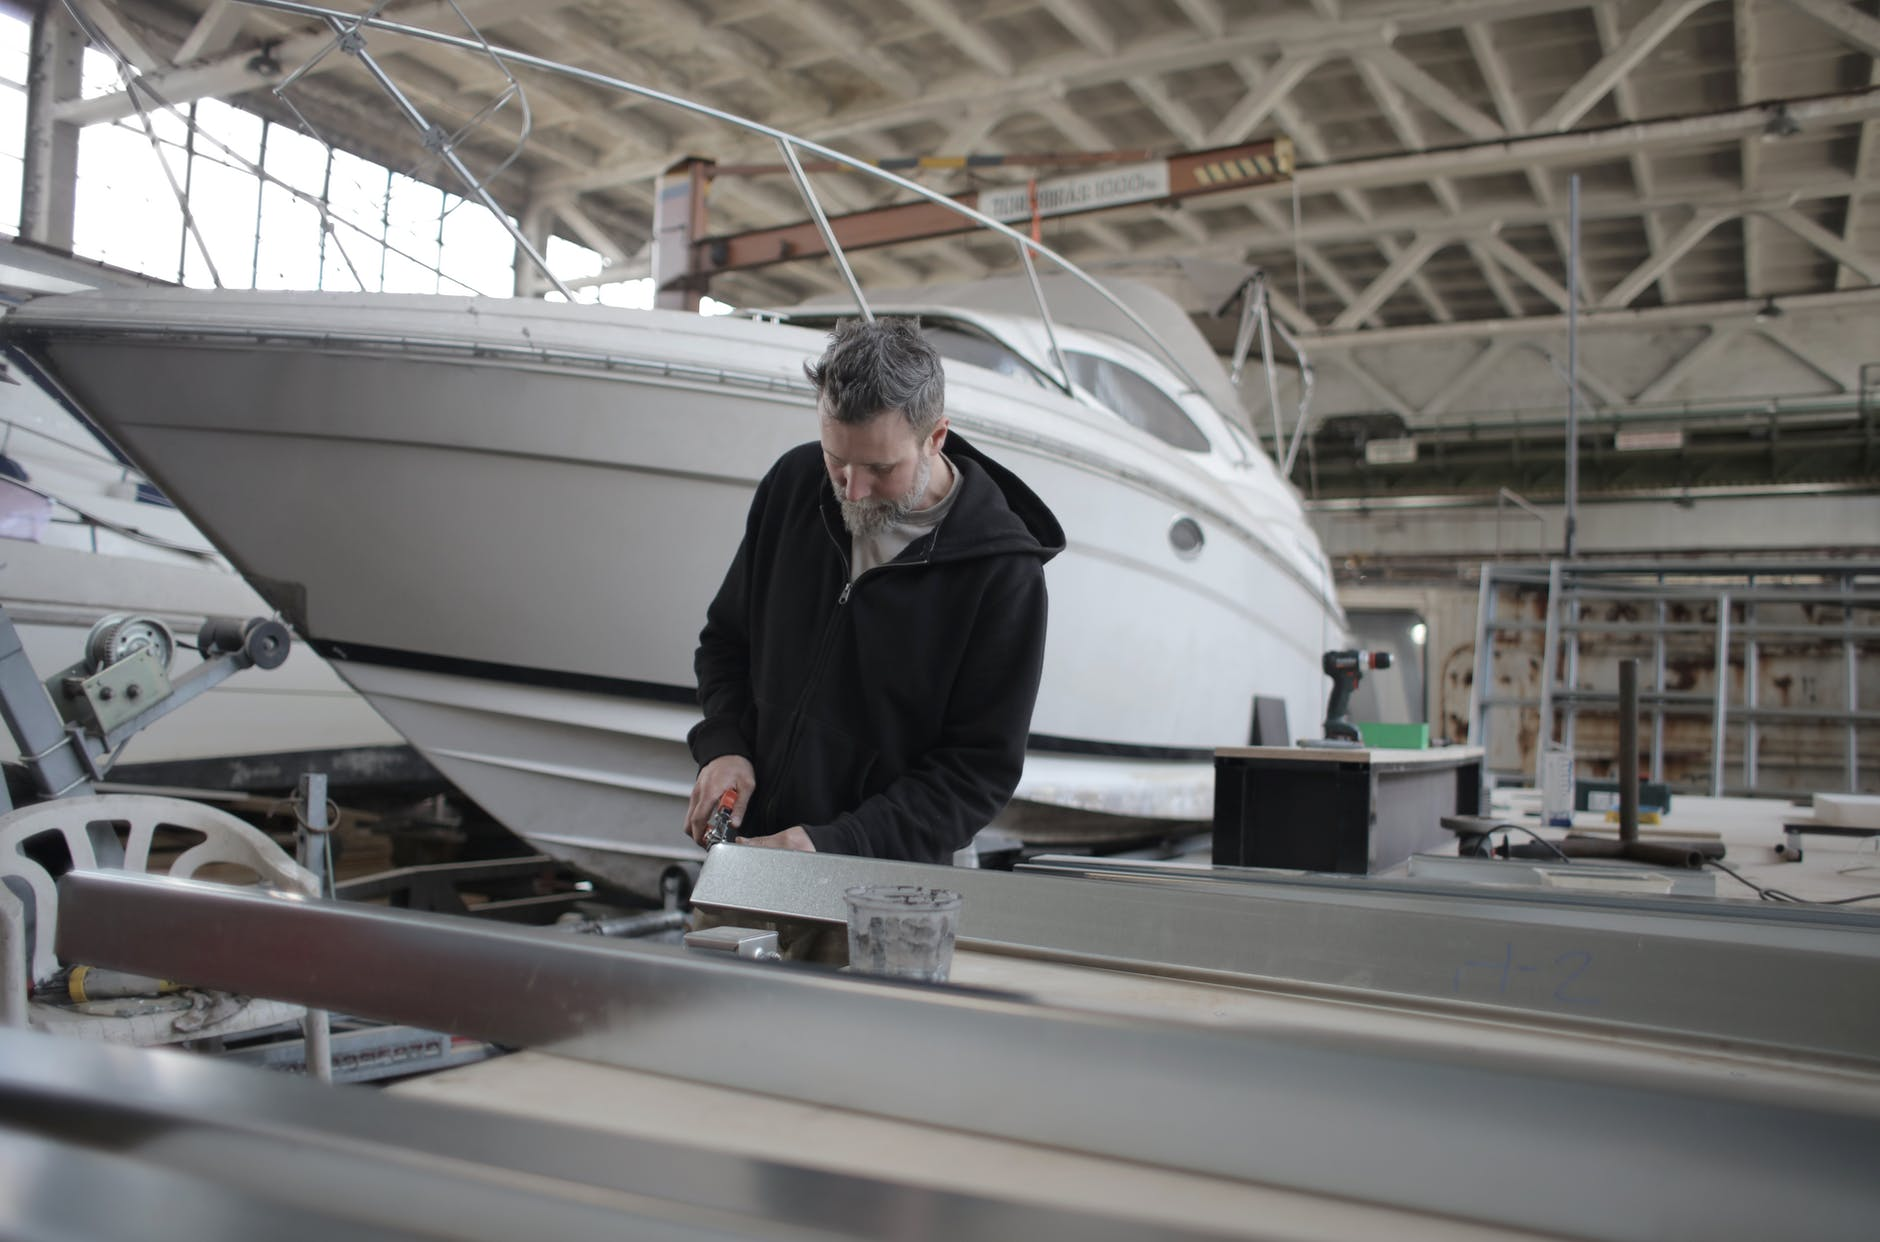 Top 4 Maintenance Tips That Will Definitely Increase the Life of a Boat